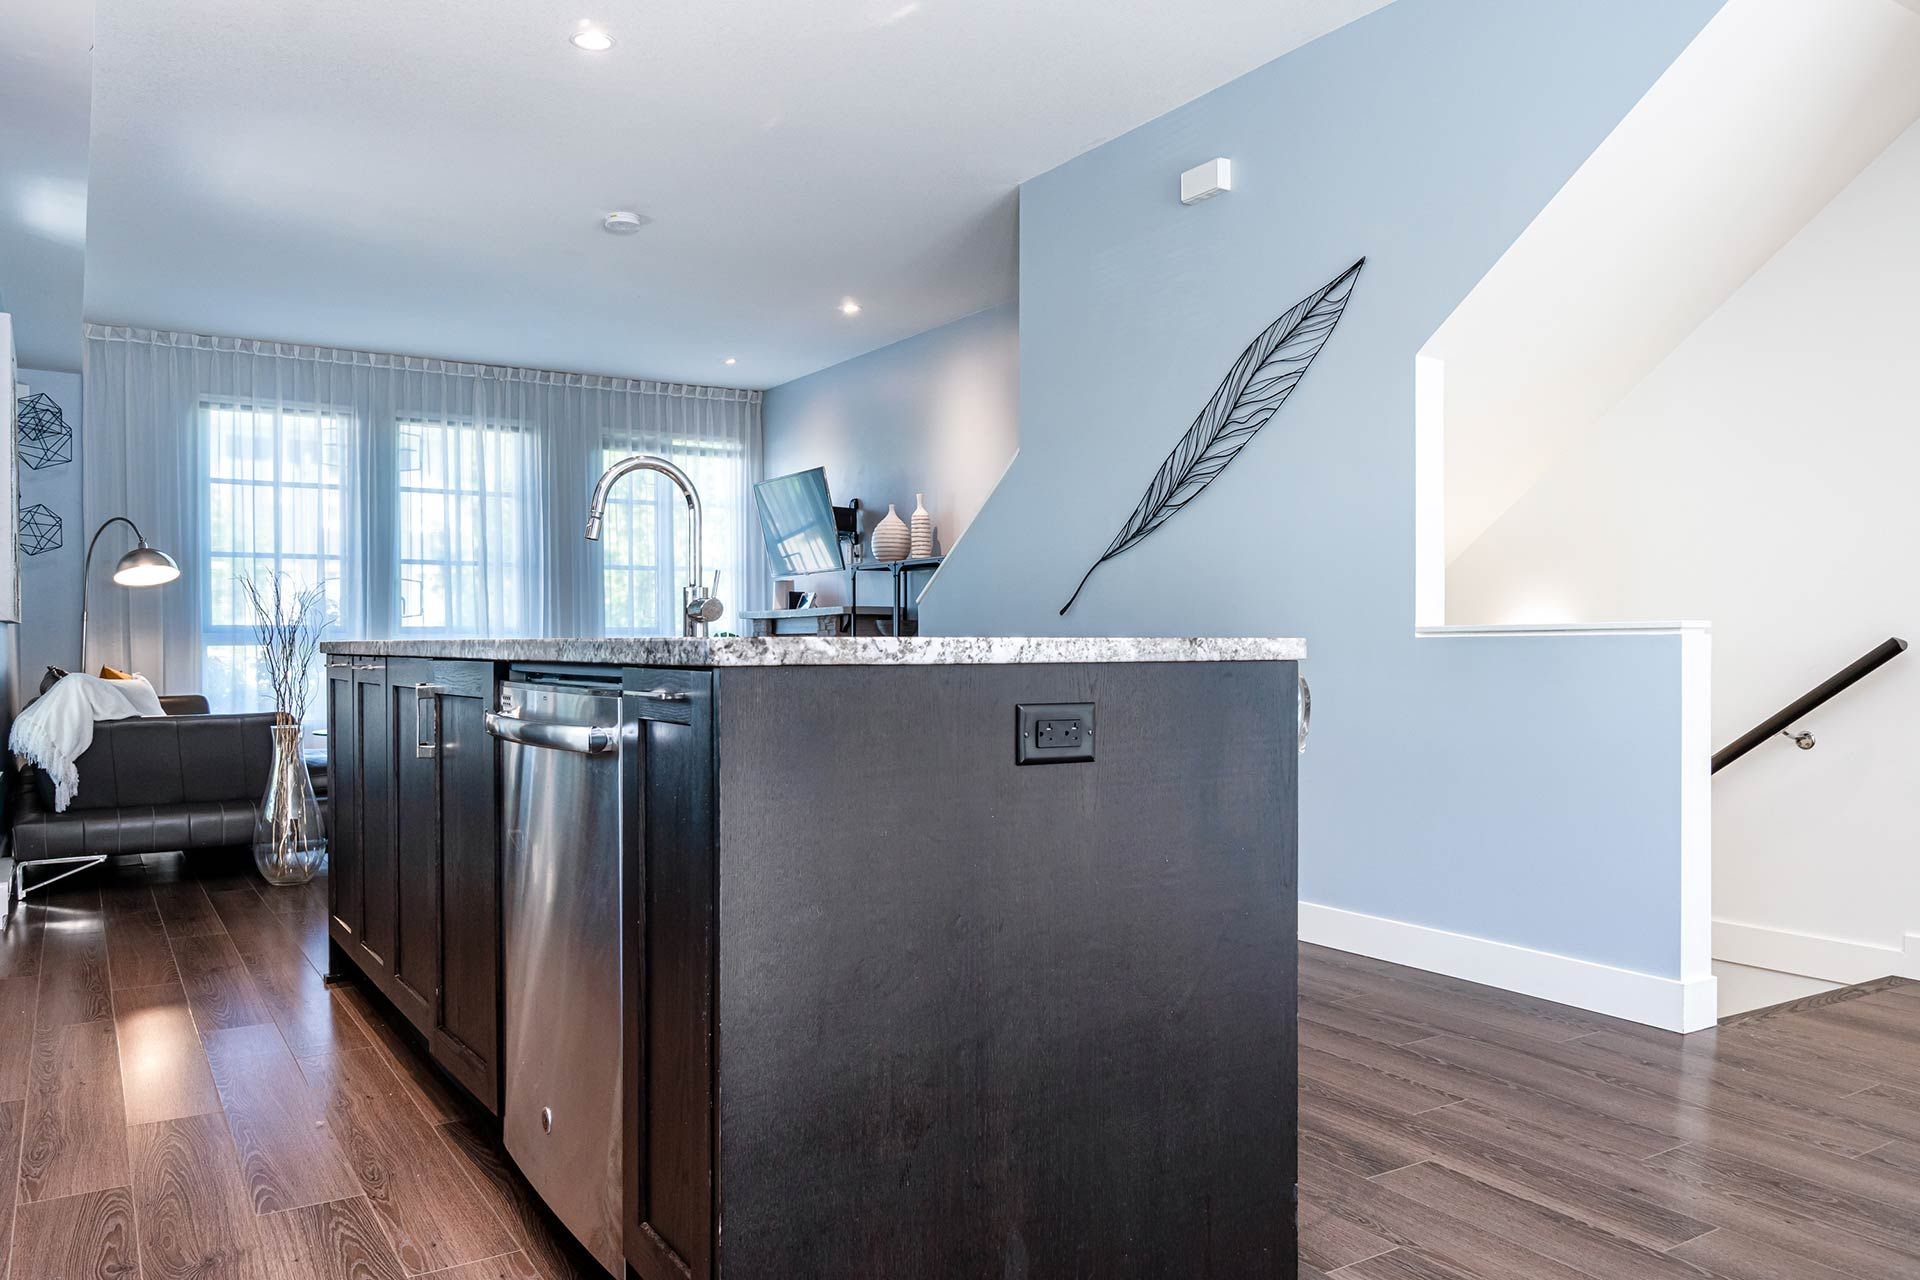 """Photo 13: Photos: 154 548 FOSTER Avenue in Coquitlam: Coquitlam West Townhouse for sale in """"BLACK + WHITE"""" : MLS®# R2587208"""